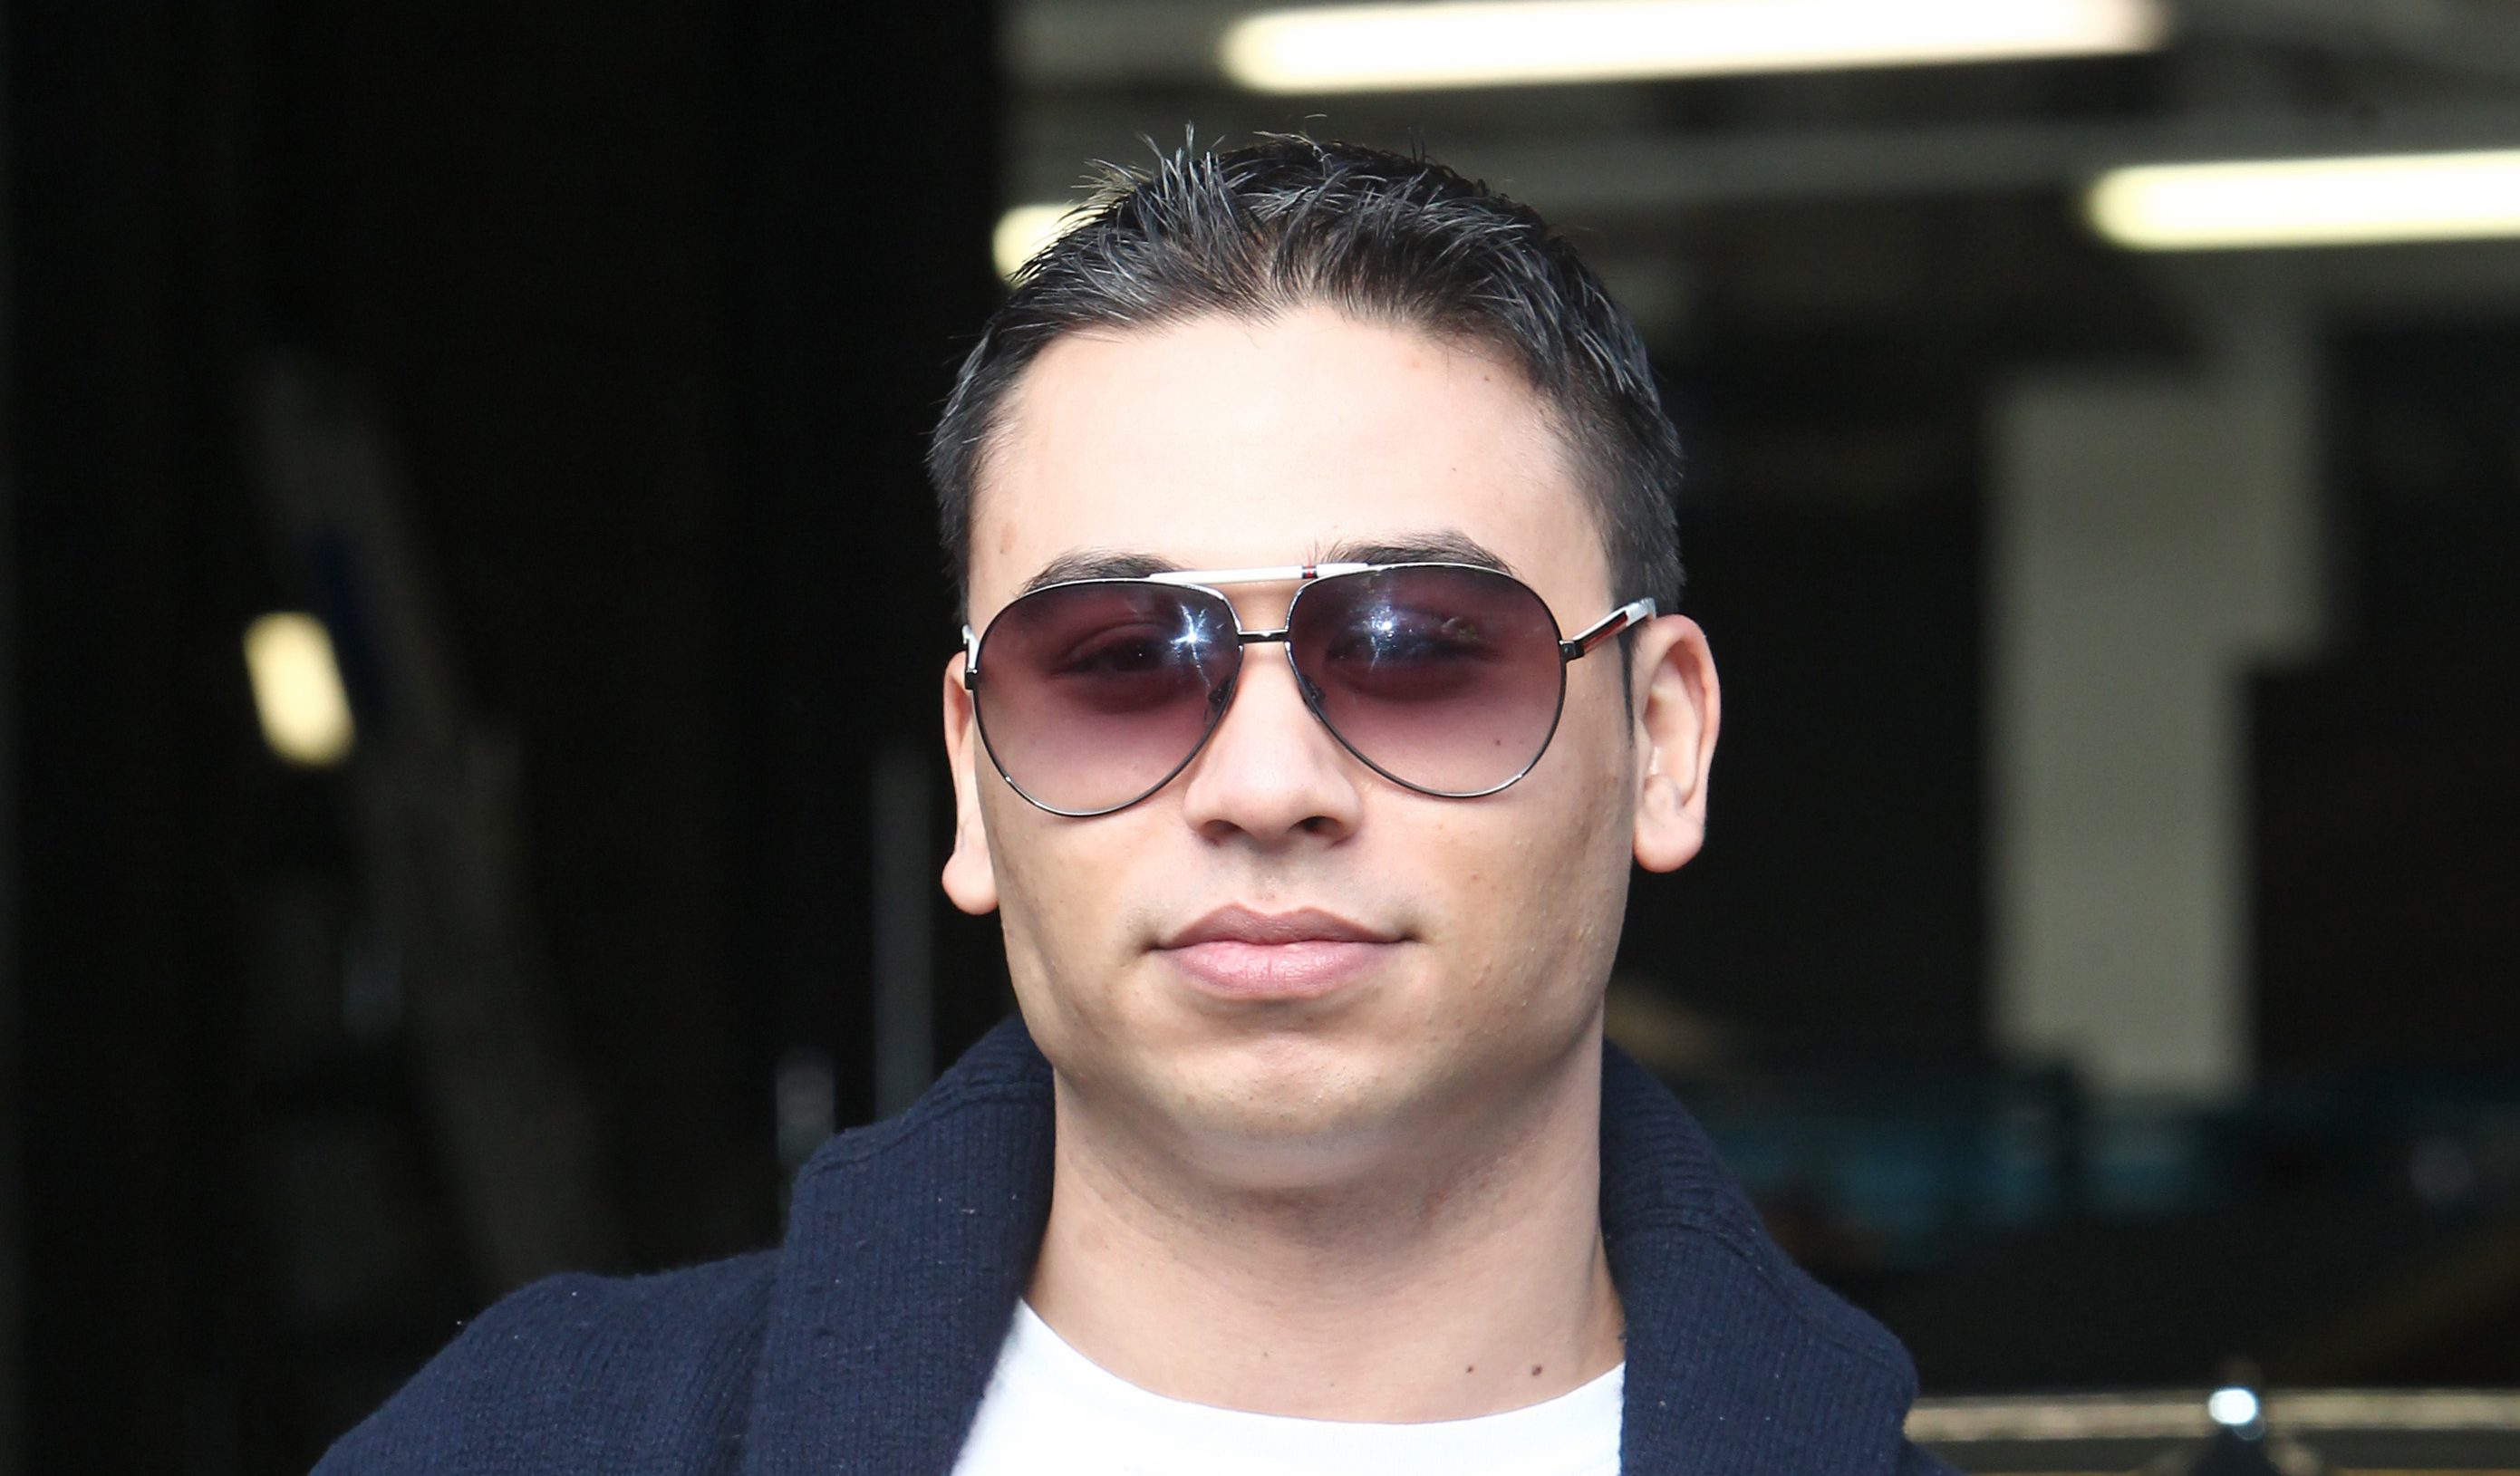 Ricky Norwood reunites with EastEnders co-star for new project